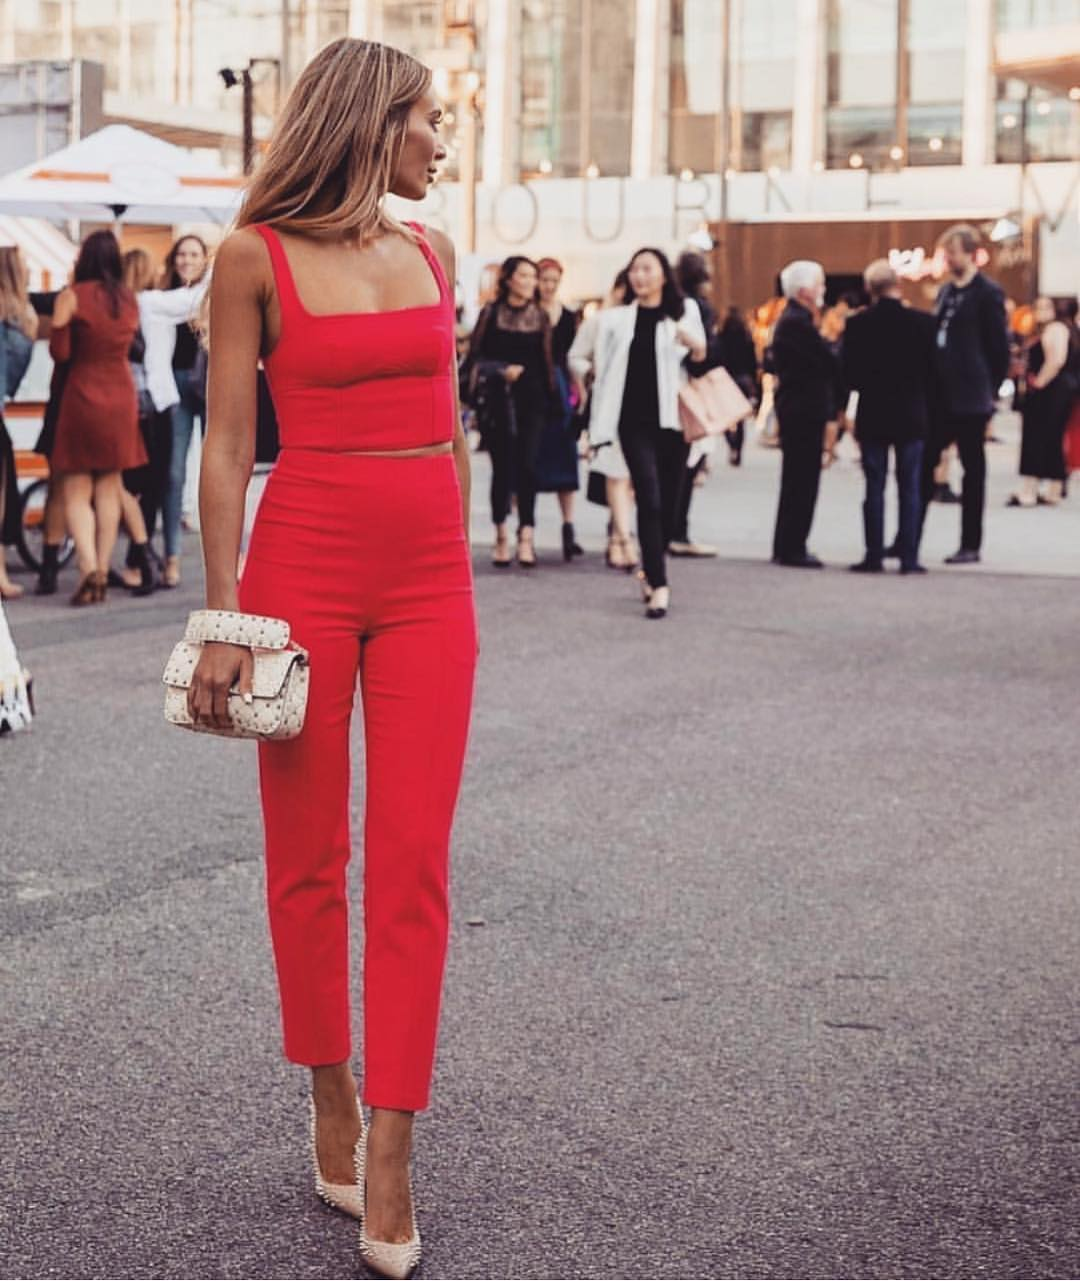 Red Two-Piece Jumpsuit For Summer Street Walks 2019